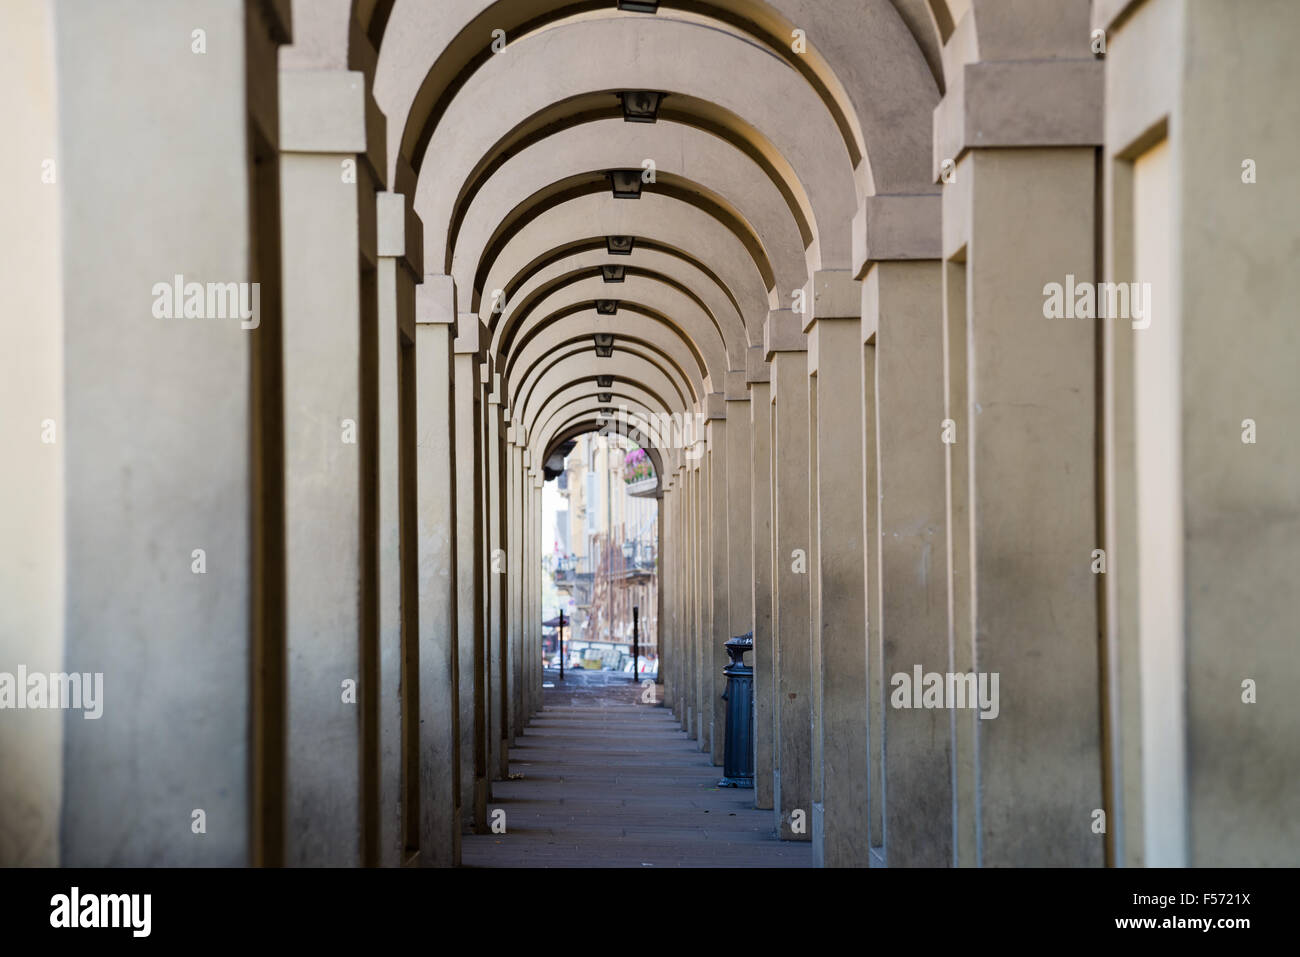 Arches of the Vassari Corridor connecting the Uffizi with the Pitti Palace in Florence, Tuscany, Italy - Stock Image